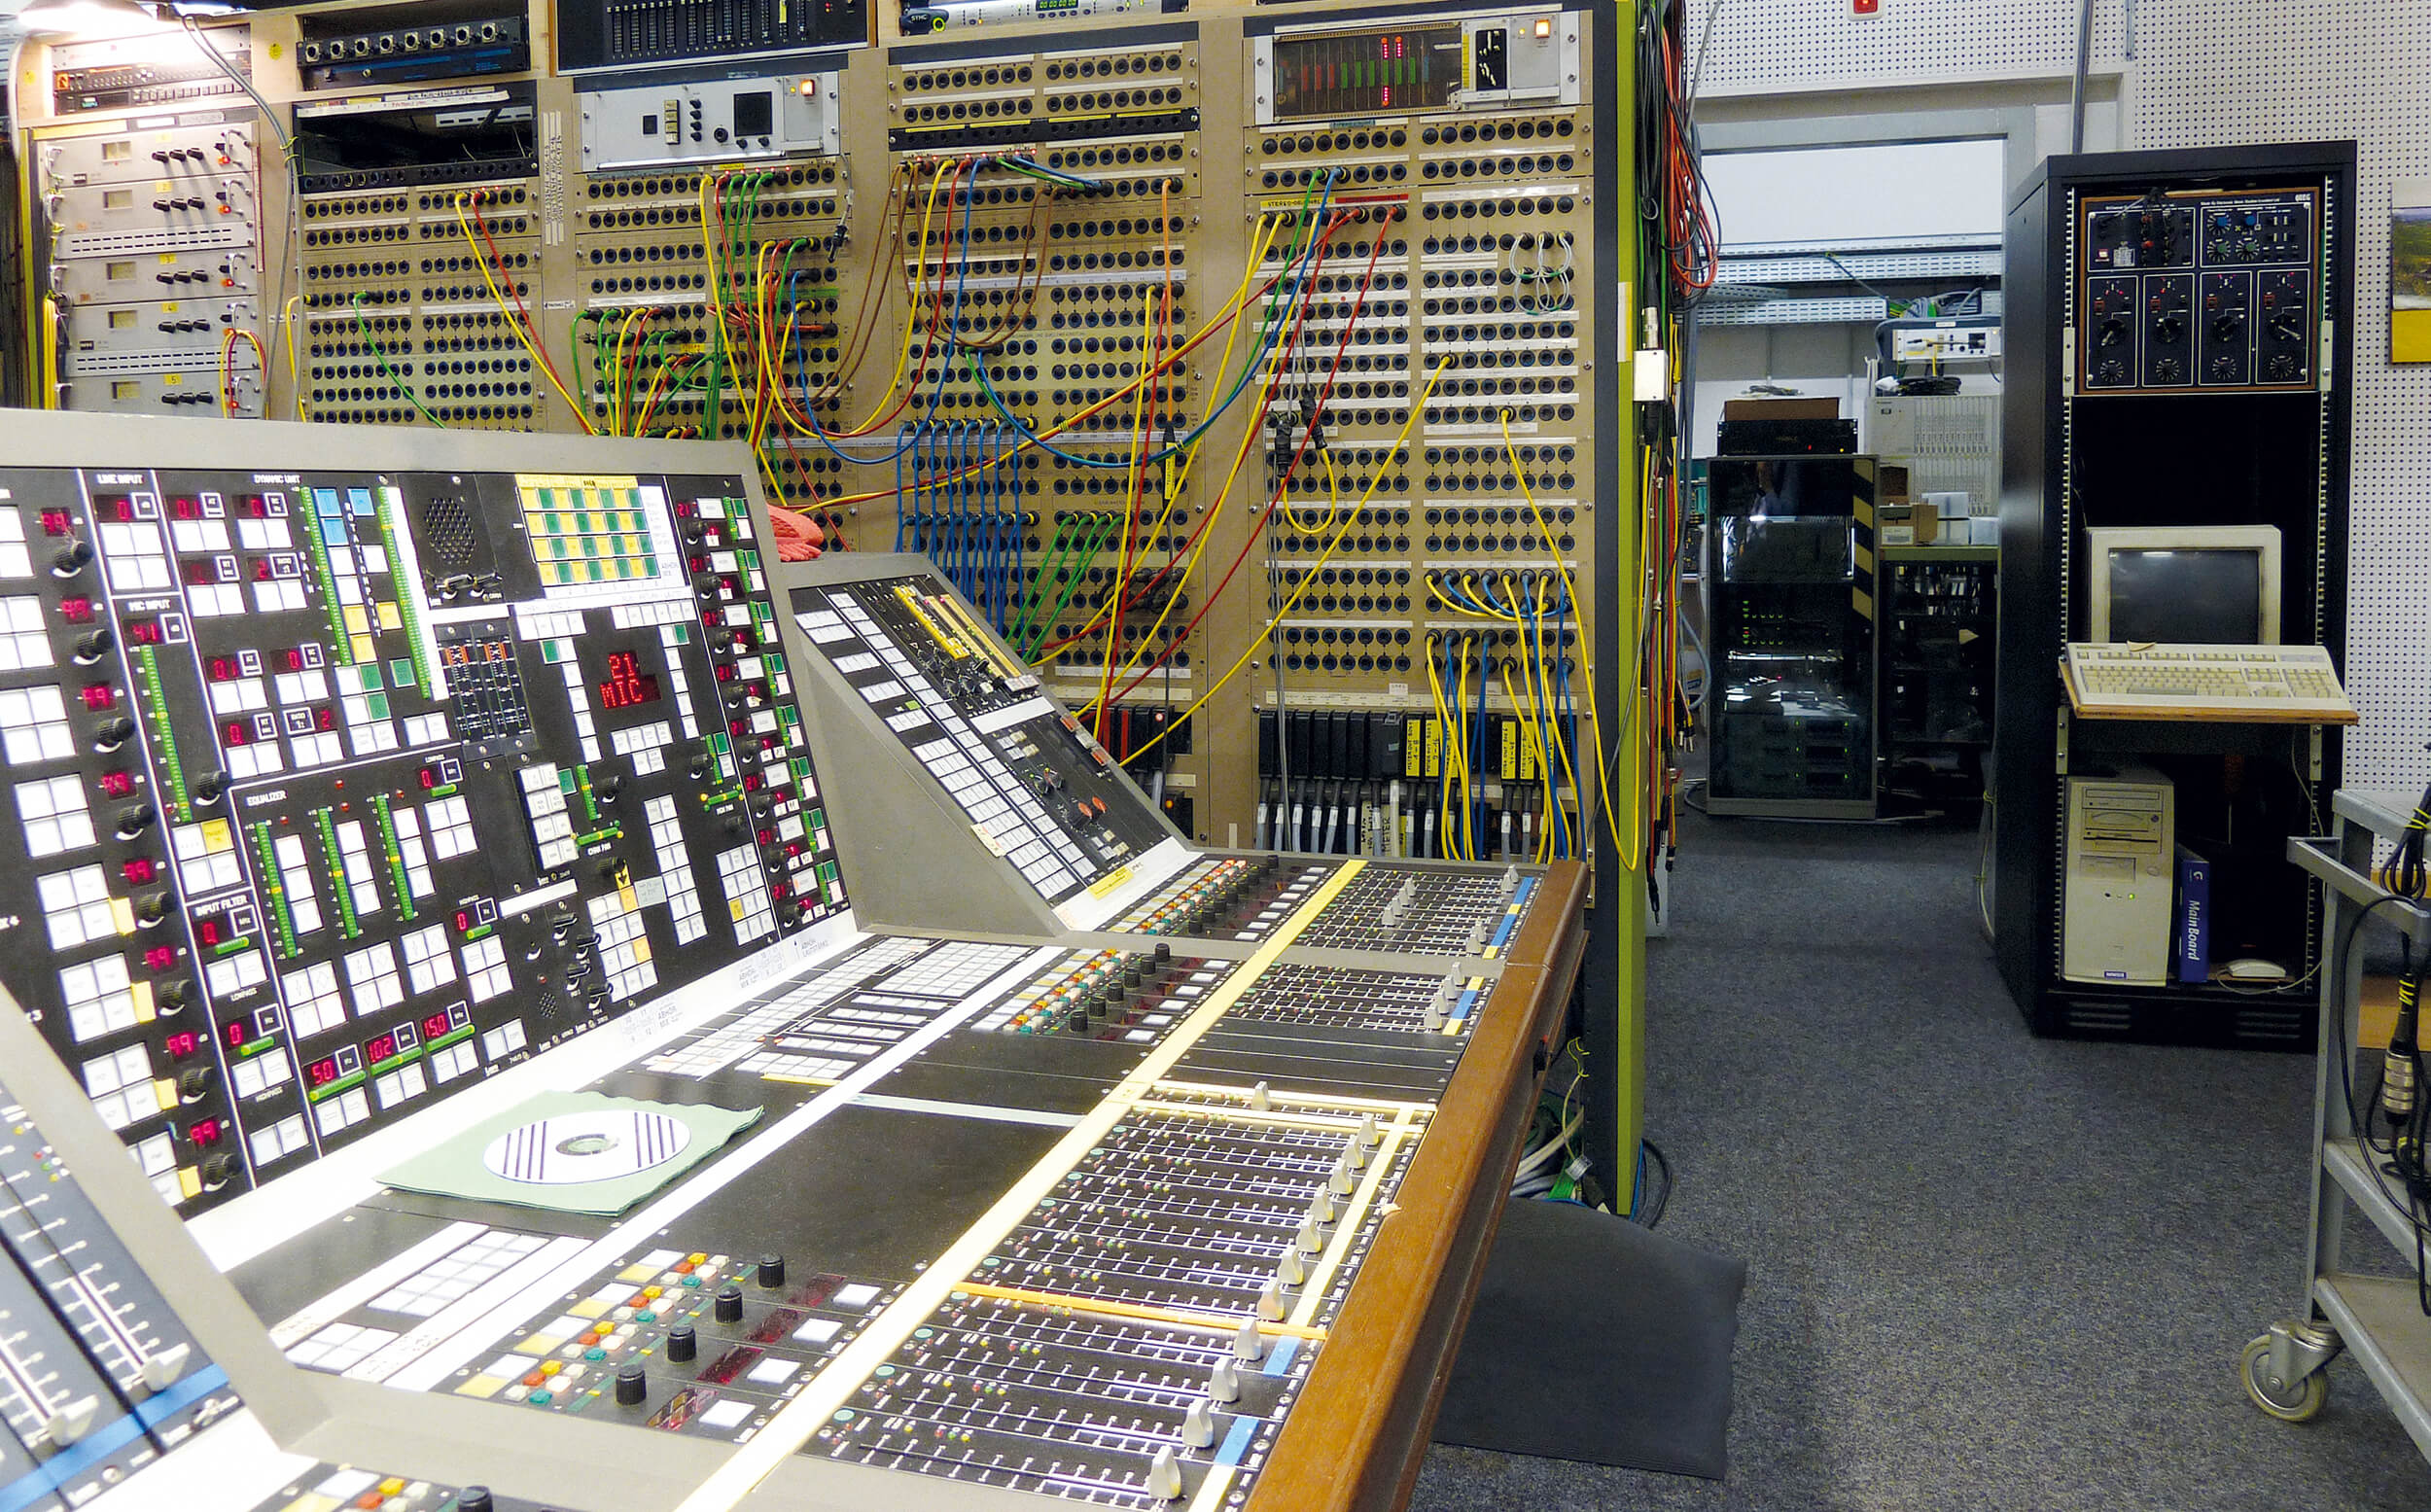 Studio for electronic music at WDR, Cologne